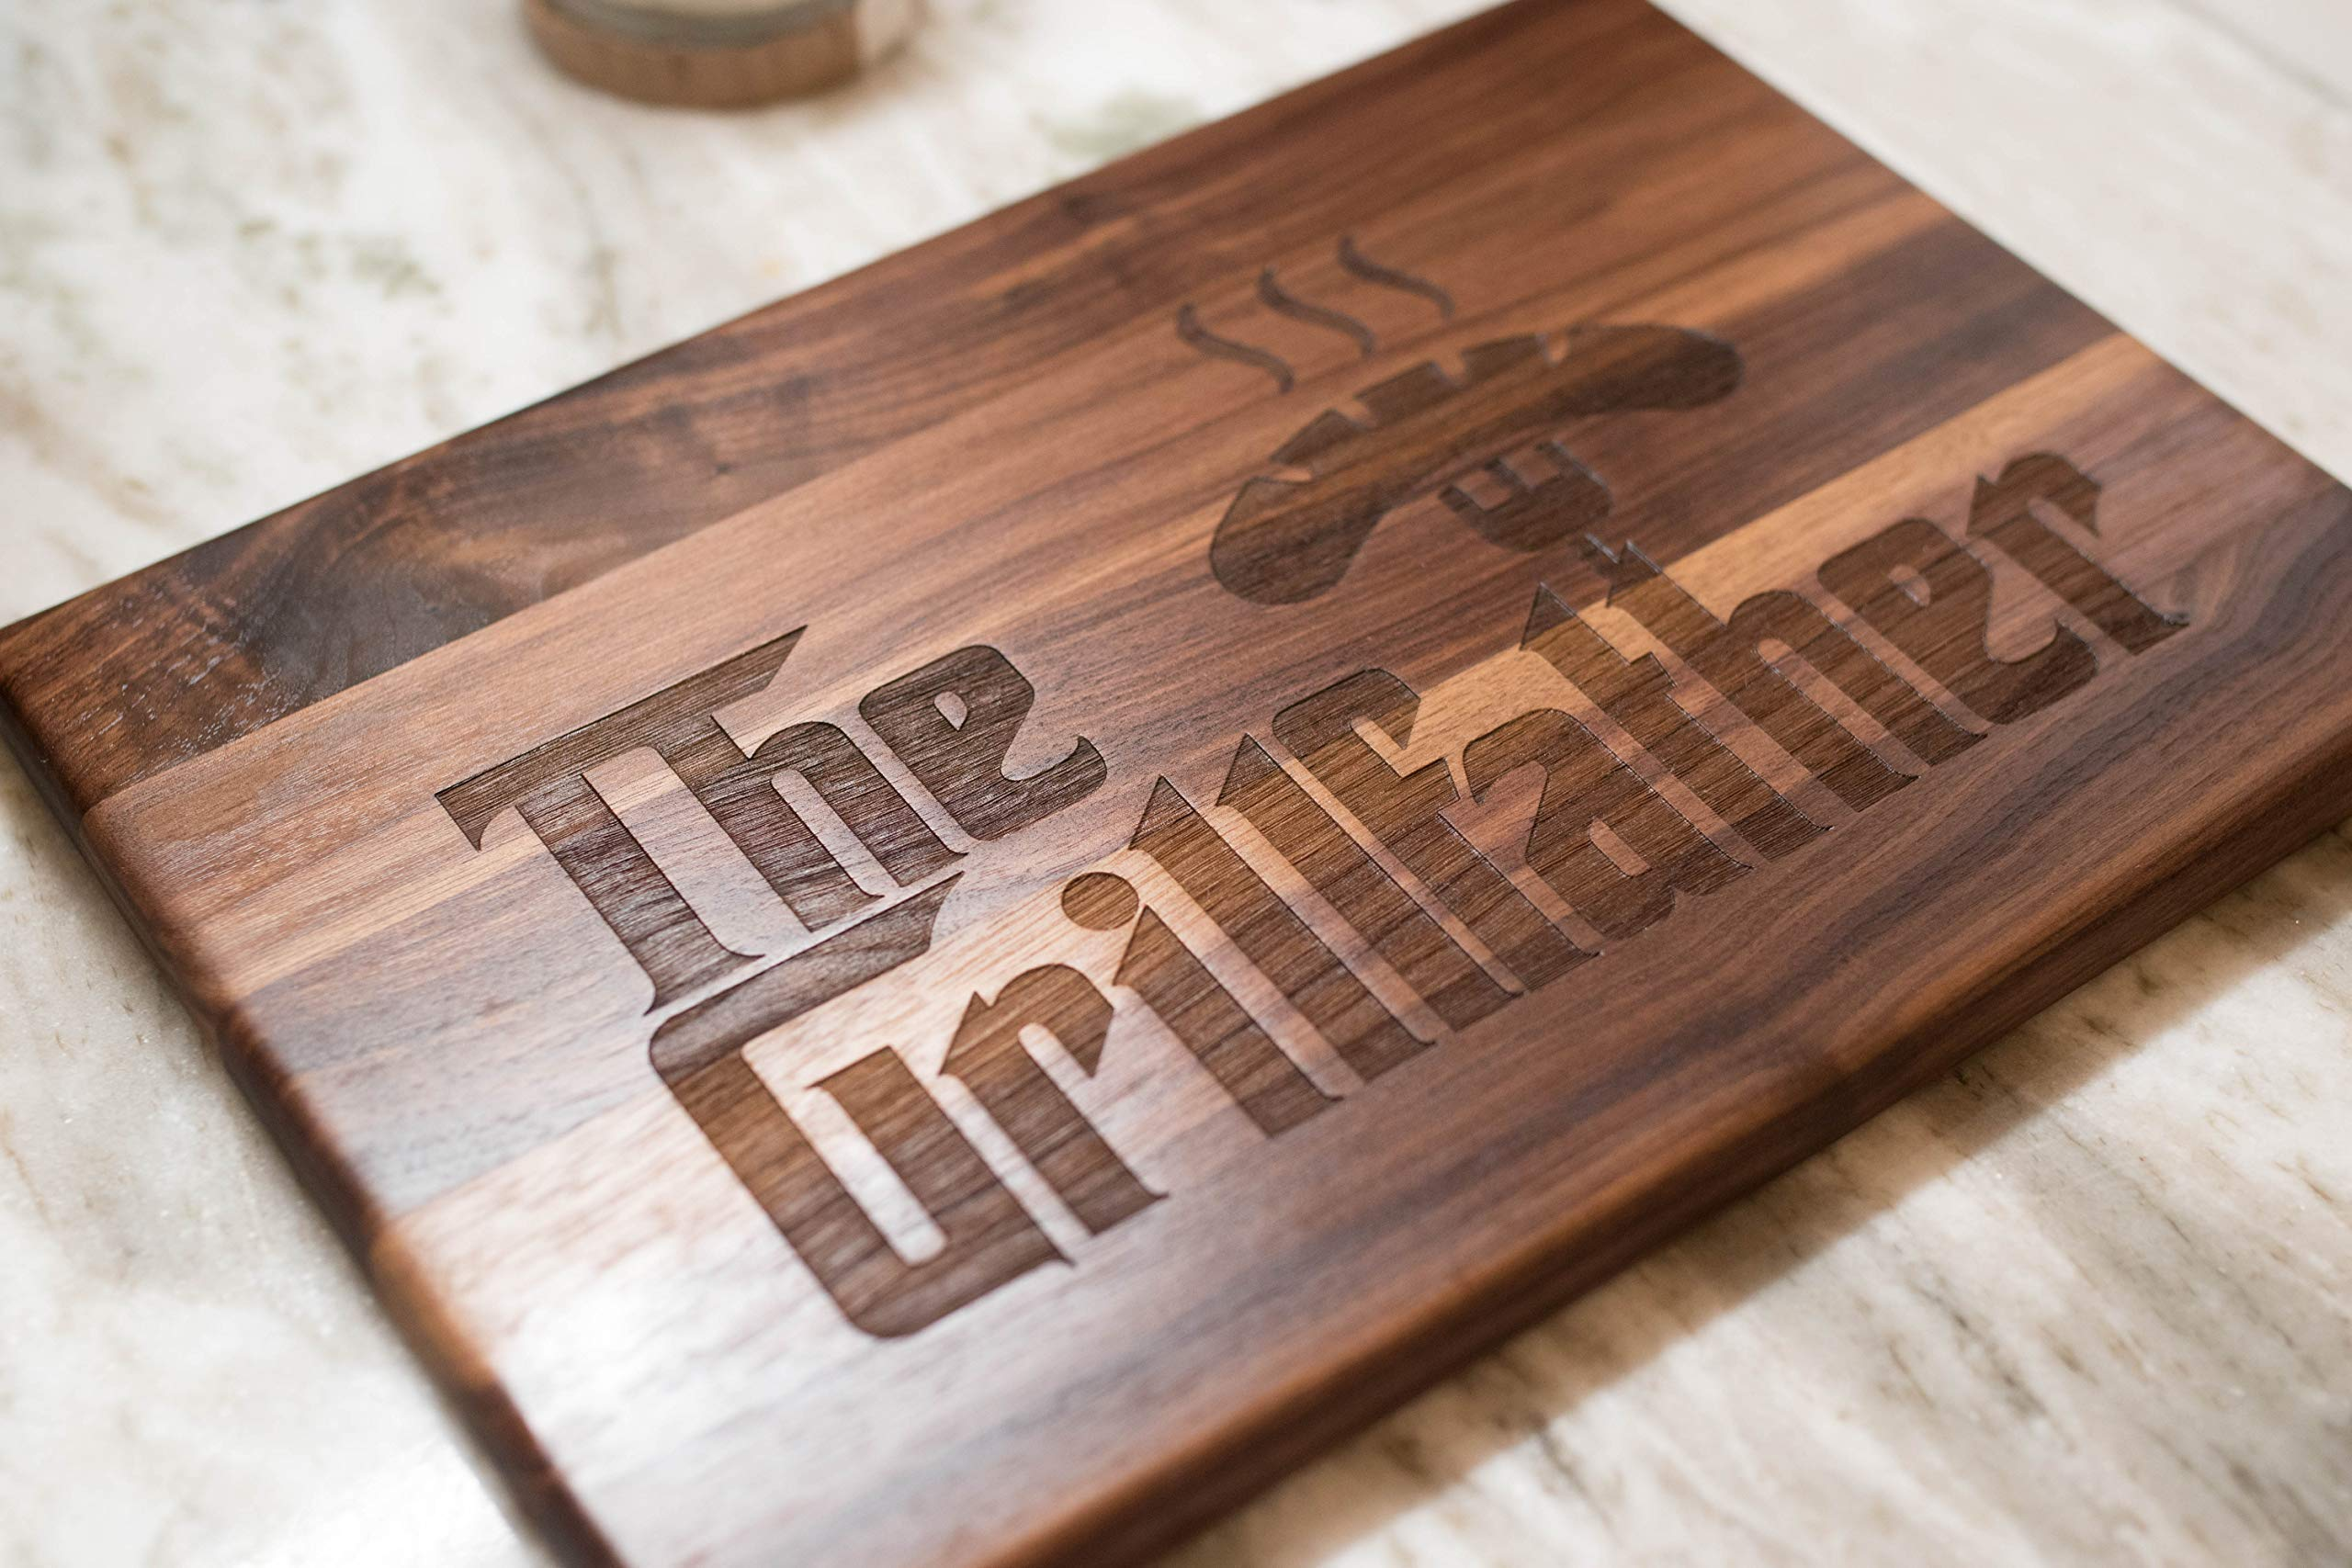 Father's Day Gift for Dad - USA Made Walnut Wood Cutting Board - The Grillfather Cutting Board is a perfect gift for Dad, Stepfather gift, and grandfather gift. by NakedWoodWorks (Image #1)